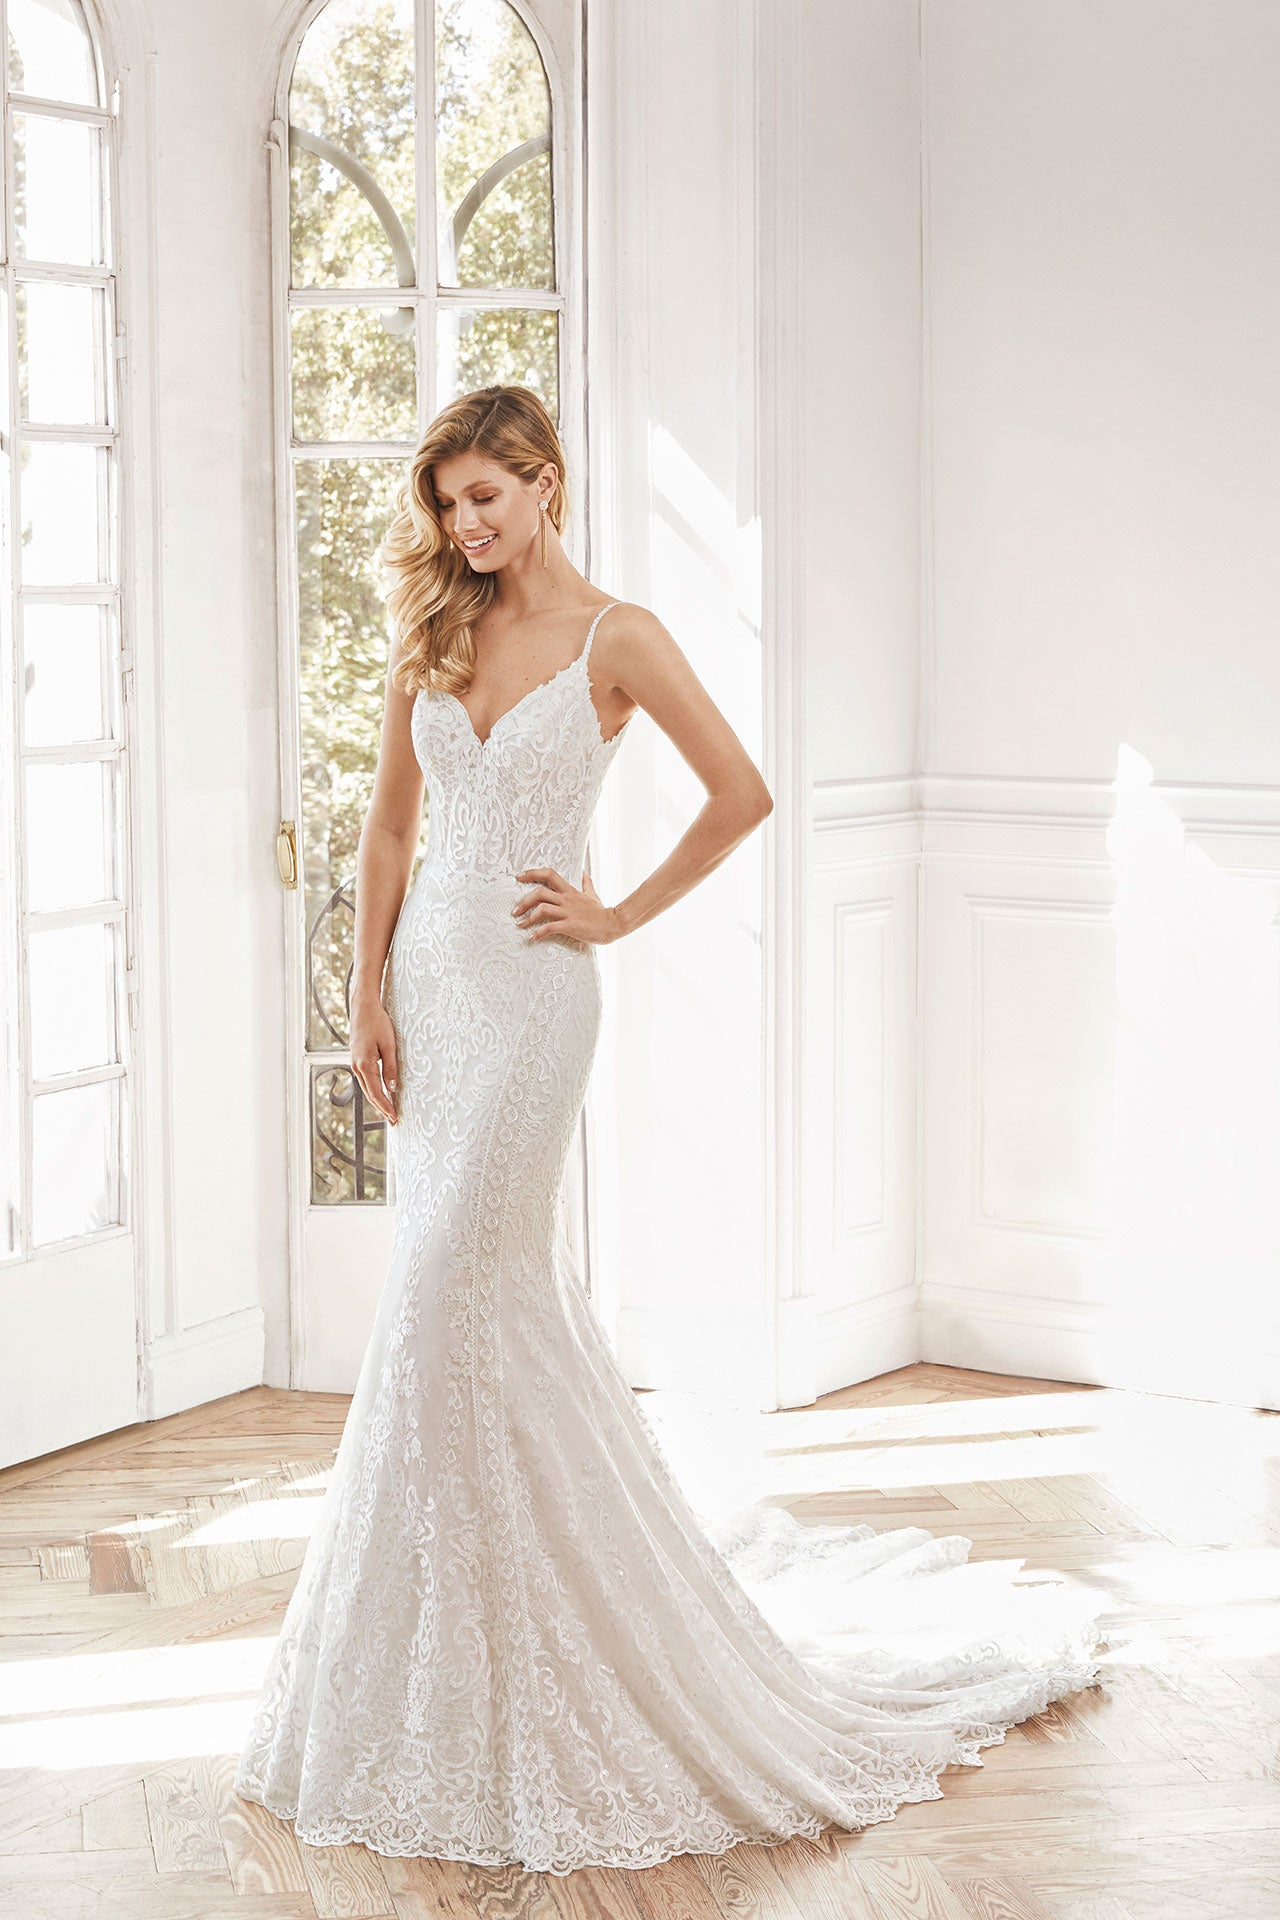 Nezca - New, Gown, Aire Barcelona - Eternal Bridal